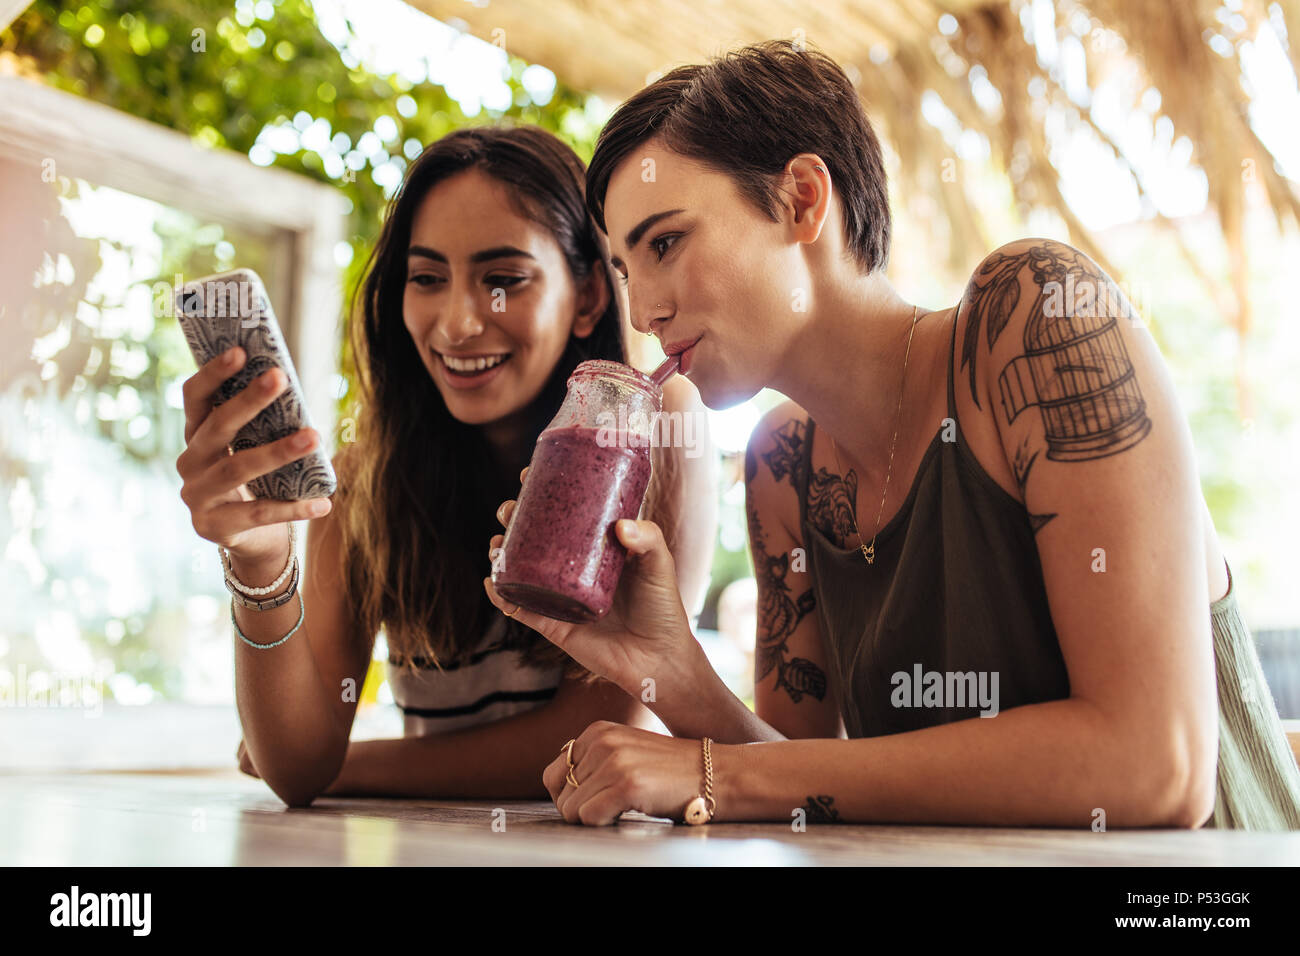 Close up of two women sitting at a restaurant looking at mobile phone. Woman showing mobile phone while another woman enjoys a smoothie. - Stock Image